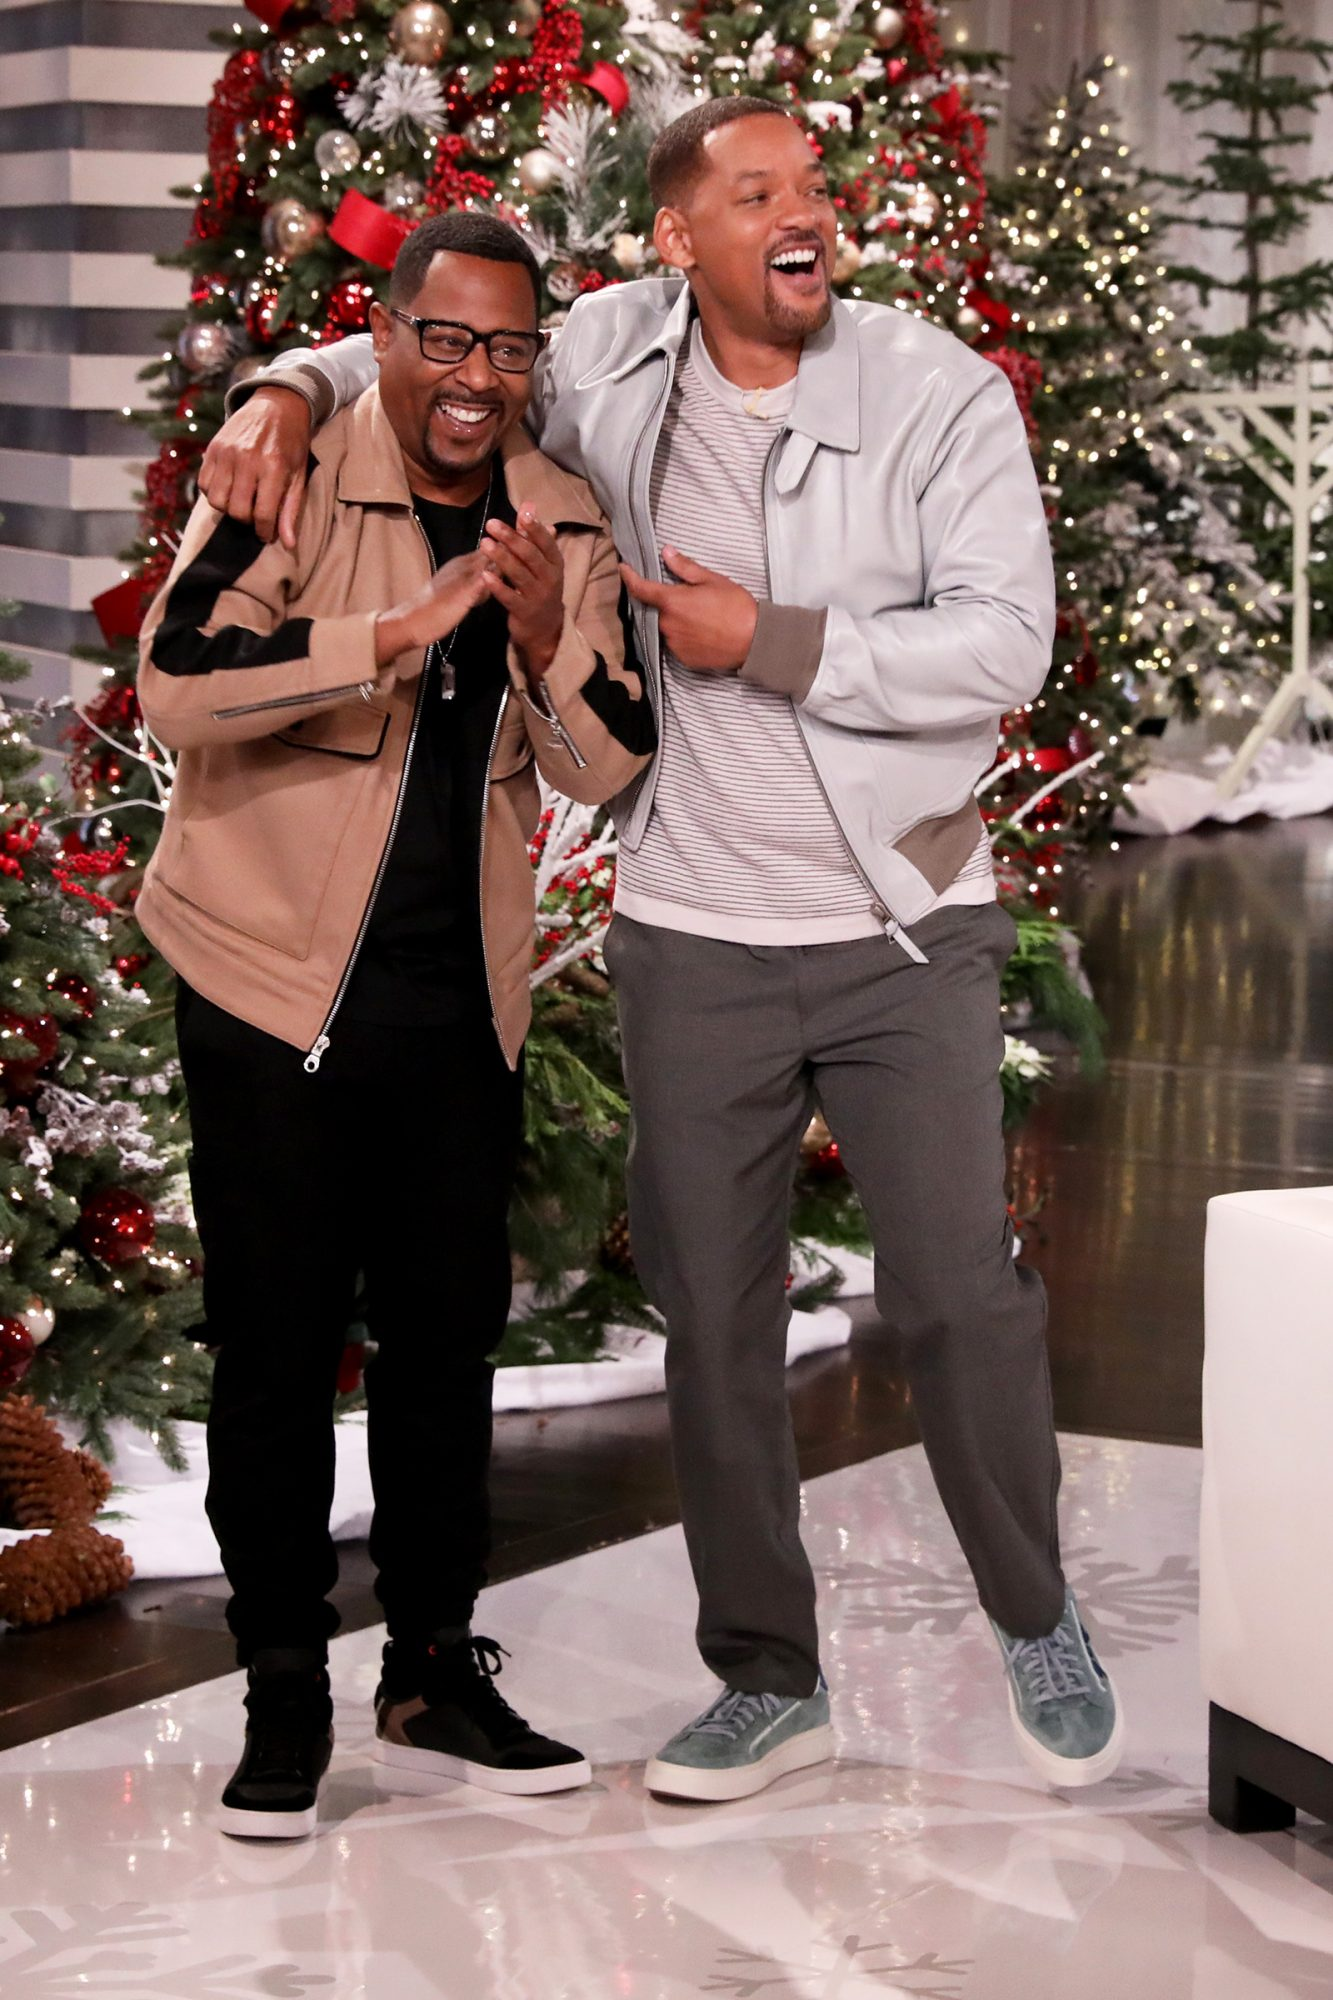 """""""Bad Boys for Life"""" co-stars Will Smith and Martin Lawrence make an appearance on """"The Ellen DeGeneres Show"""" airing Wednesday, December 4th"""